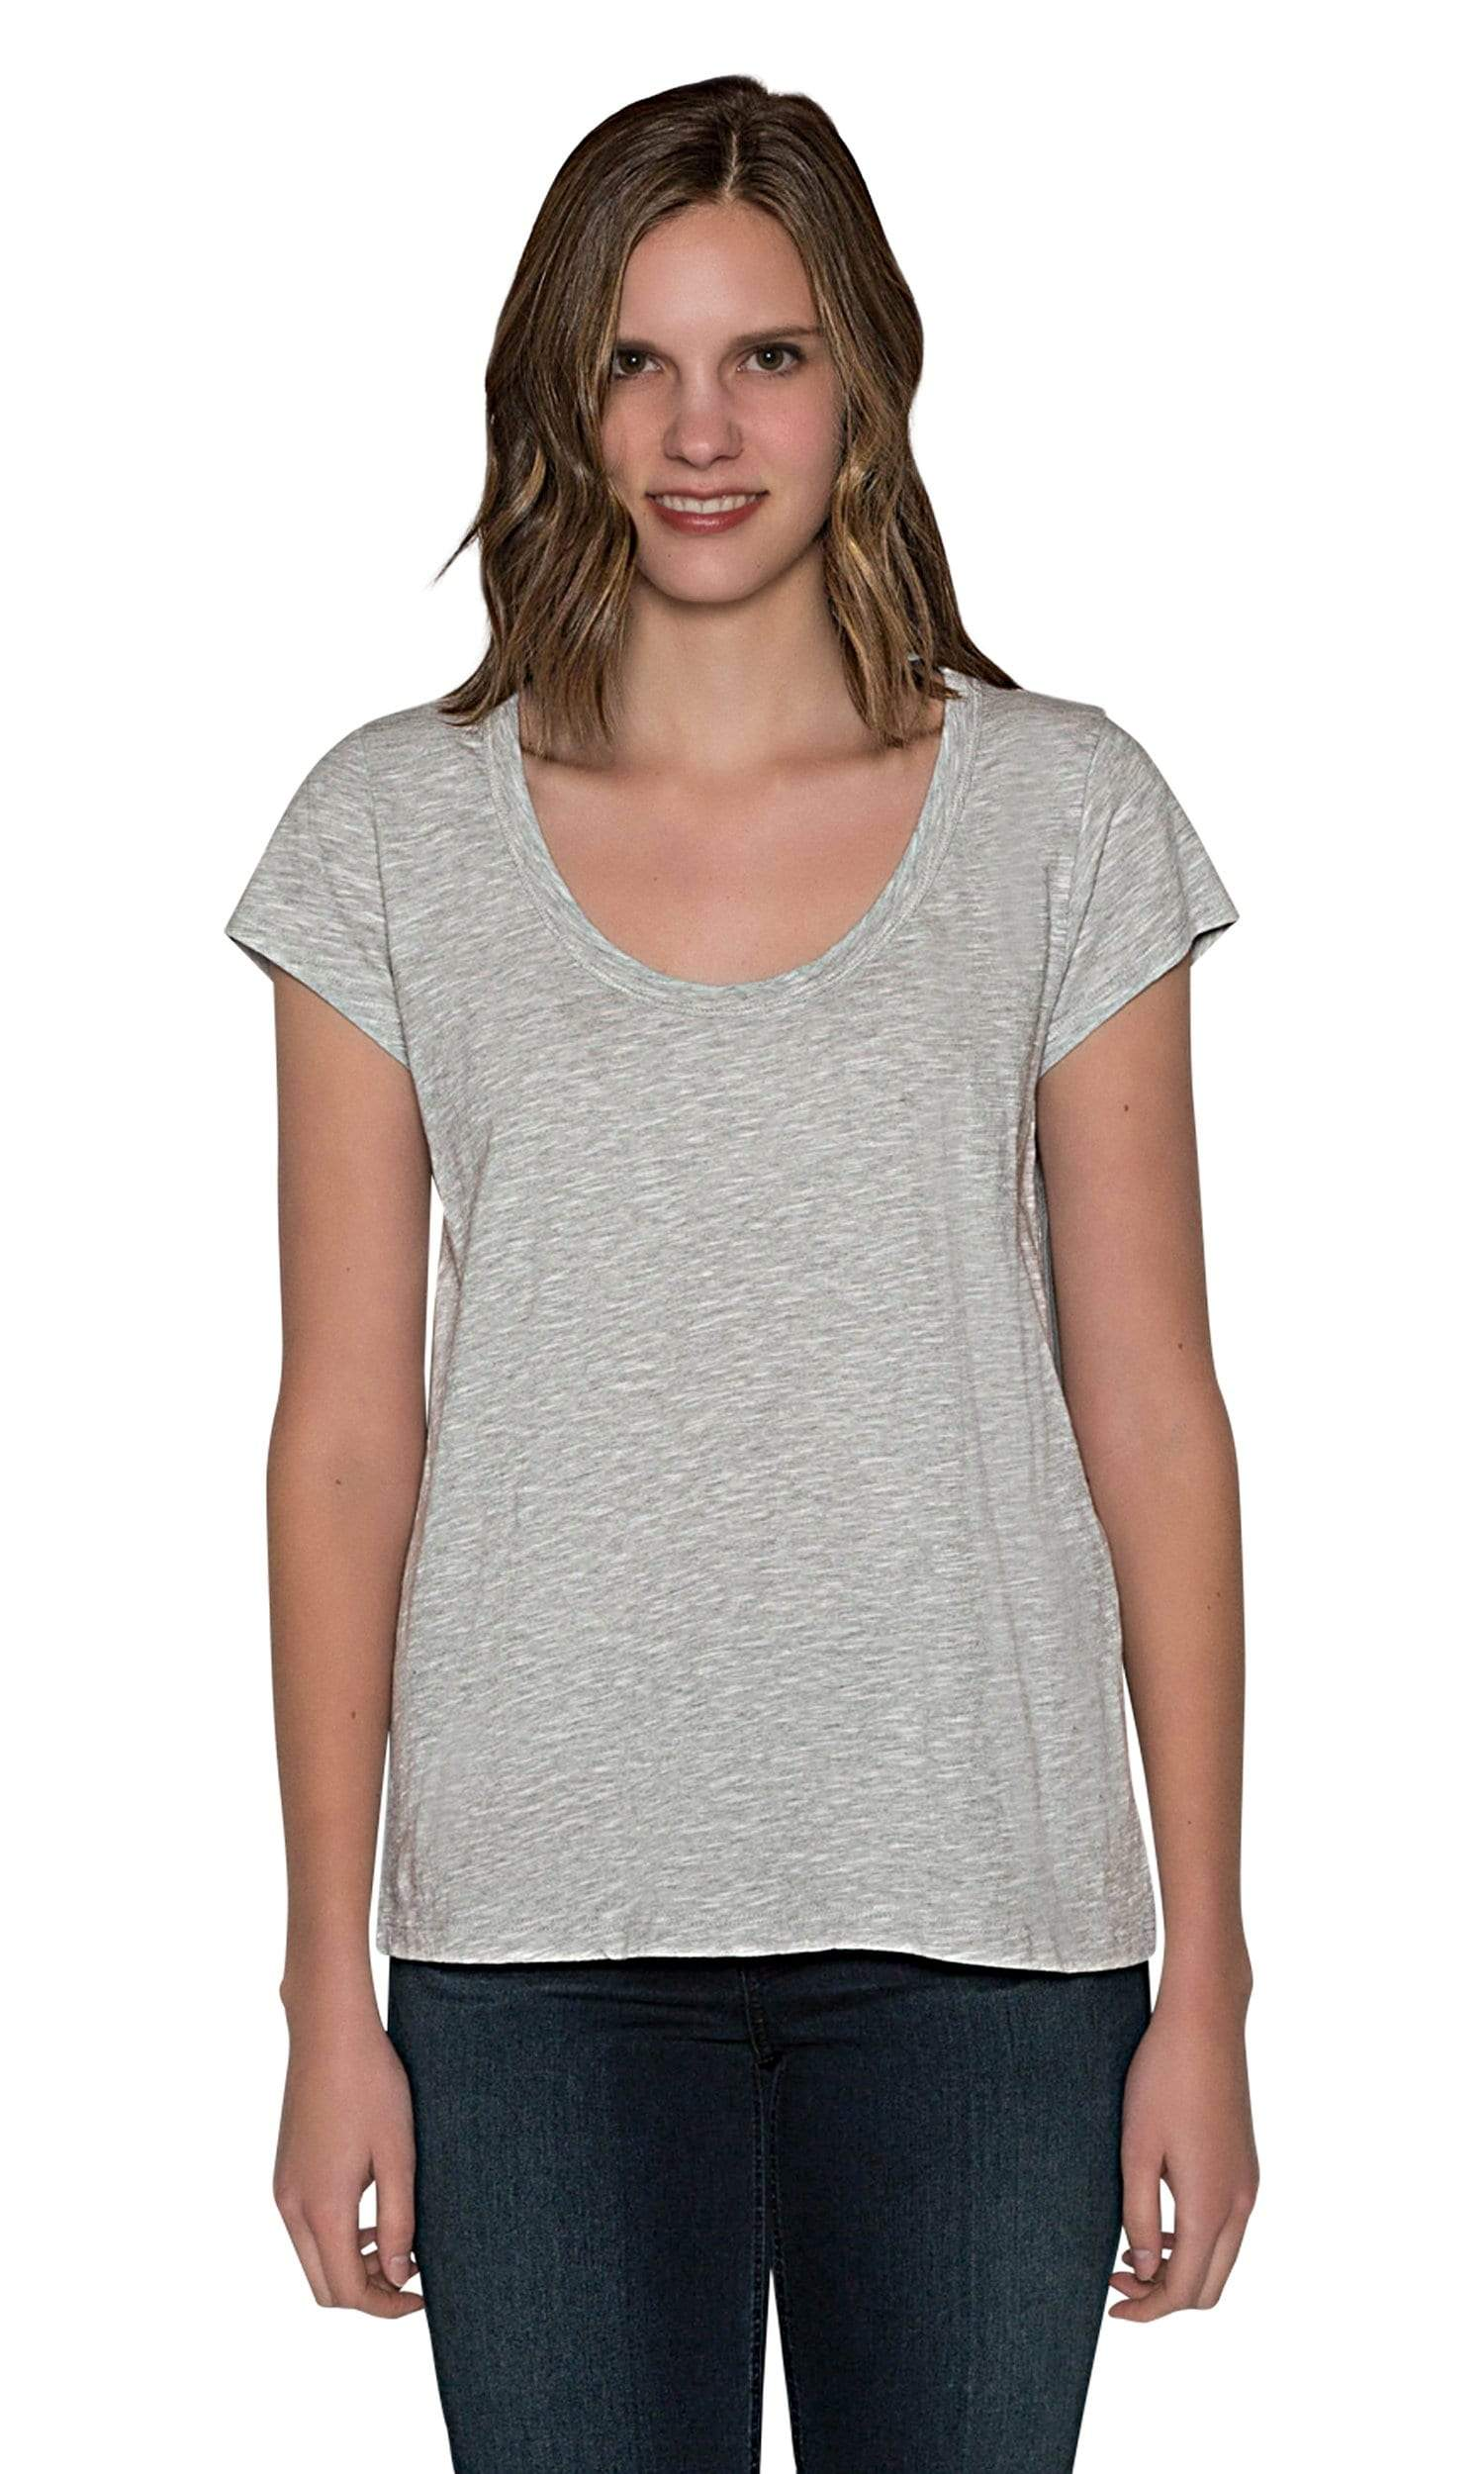 Velvet by Graham & Spencer Kira Original Slub Scoop Neck Tee - Heather Grey